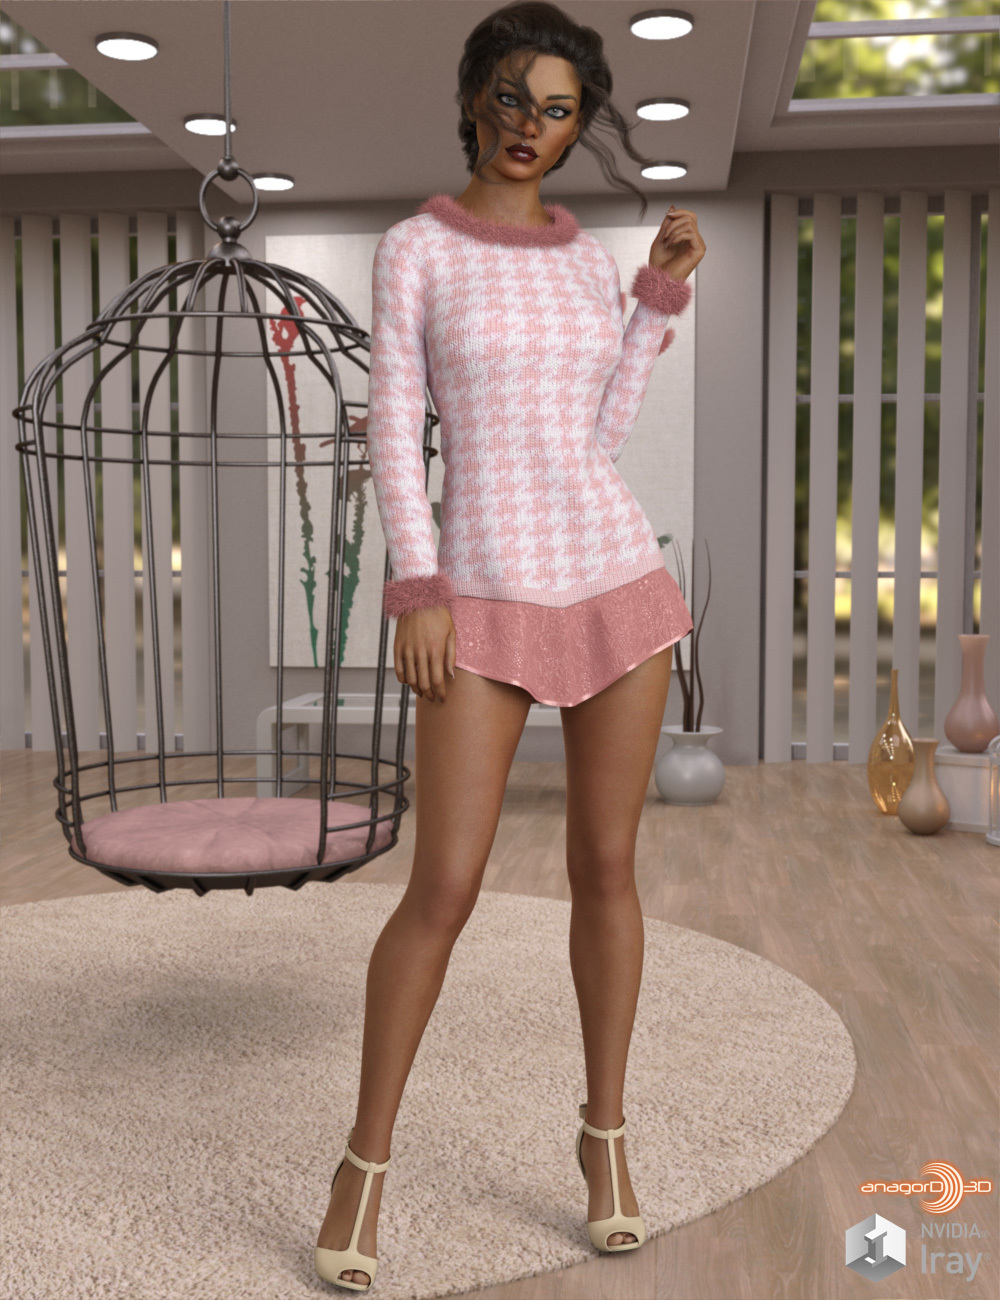 VERSUS - dforce Peppery Sweater n Dress G8F by Anagord